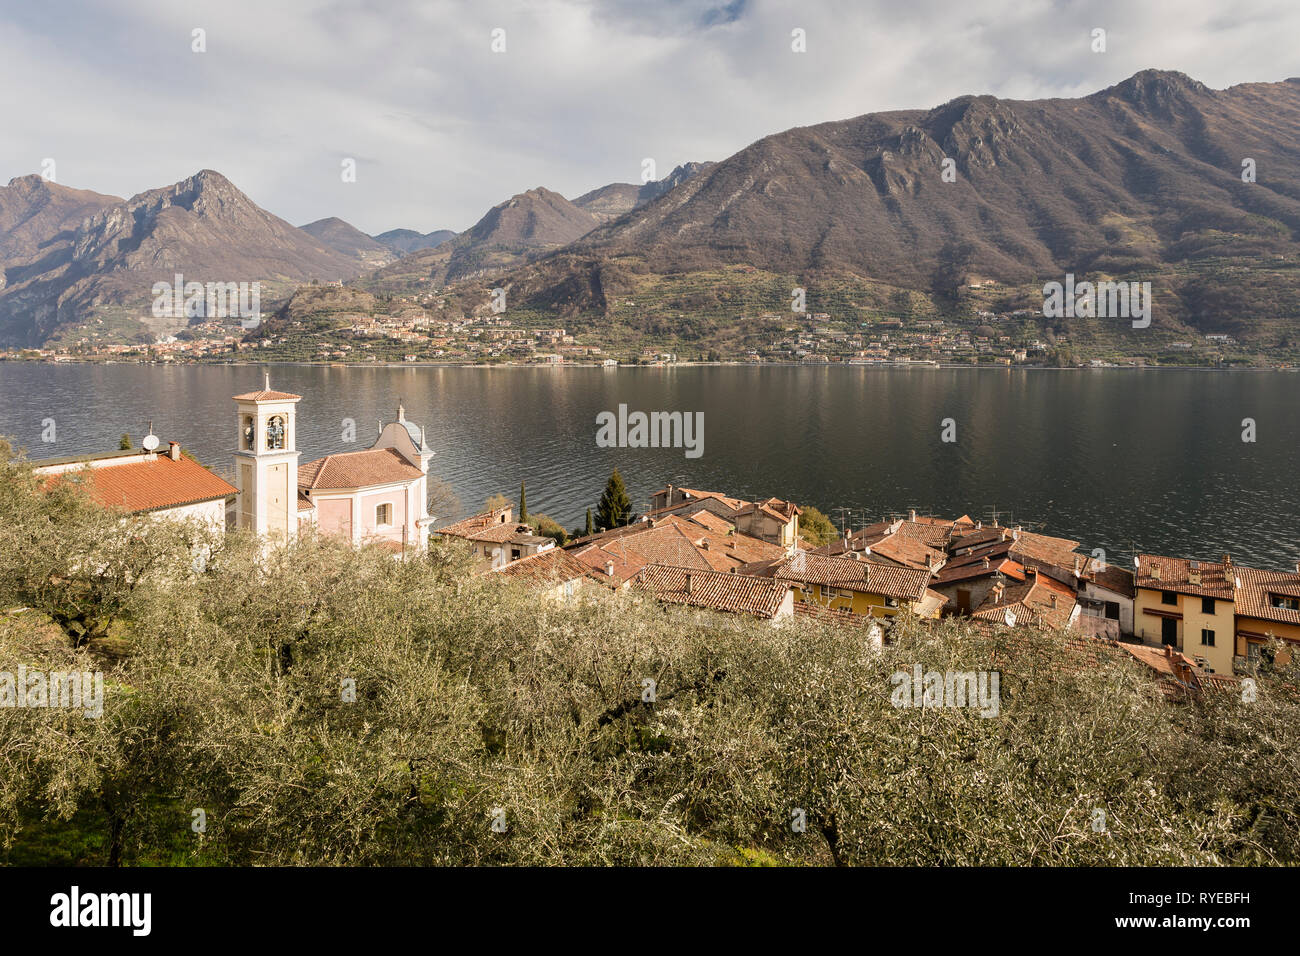 Olive grove and Carzano village of Monte Isola, Lake Iseo, Lombardy, Italy - Stock Image